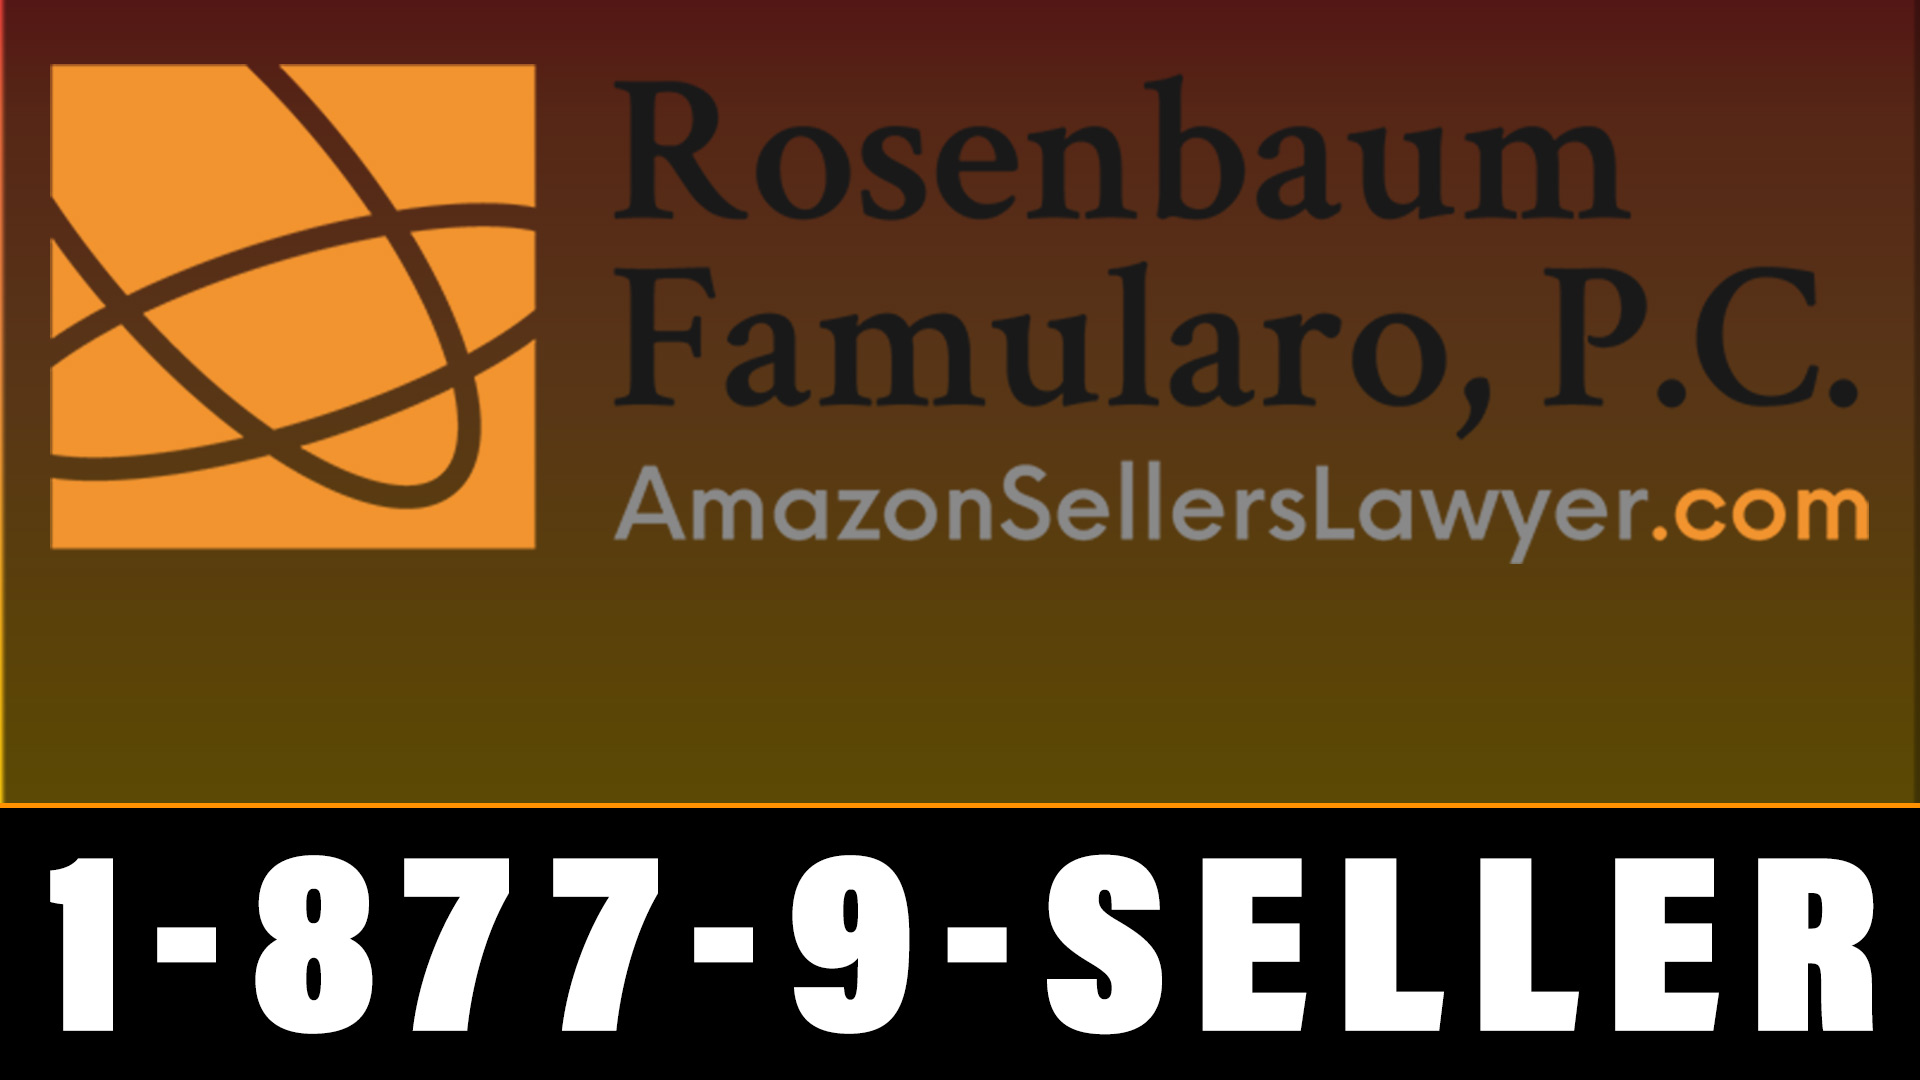 Intellectual Property Complaint Against Amazon Sellers: Design Differences in Products